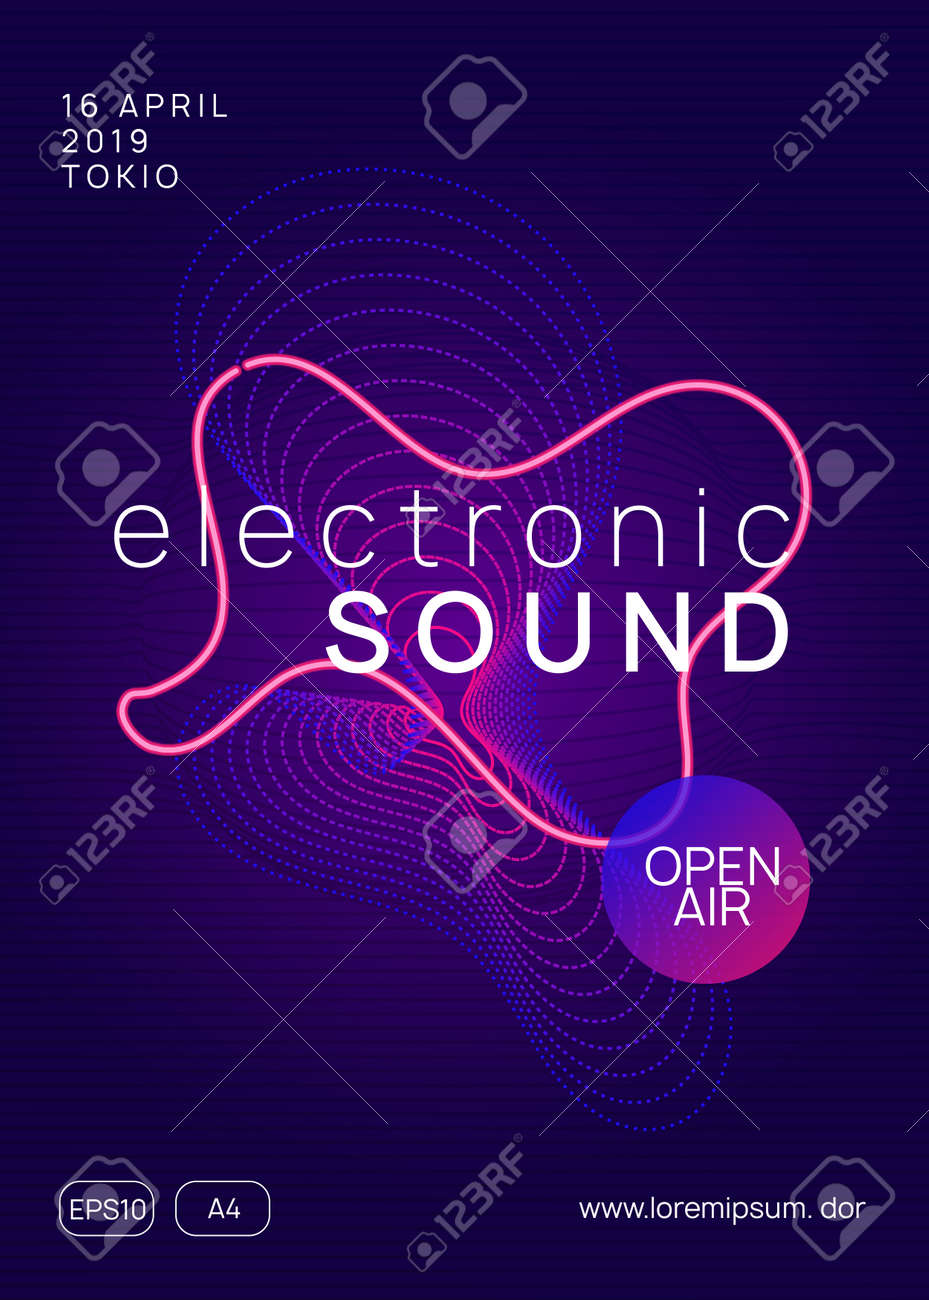 Music fest. Dynamic gradient shape and line. Minimal show banner design. Music fest neon flyer. Electro dance. Electronic trance sound. Techno dj party. Club event poster. - 126408402